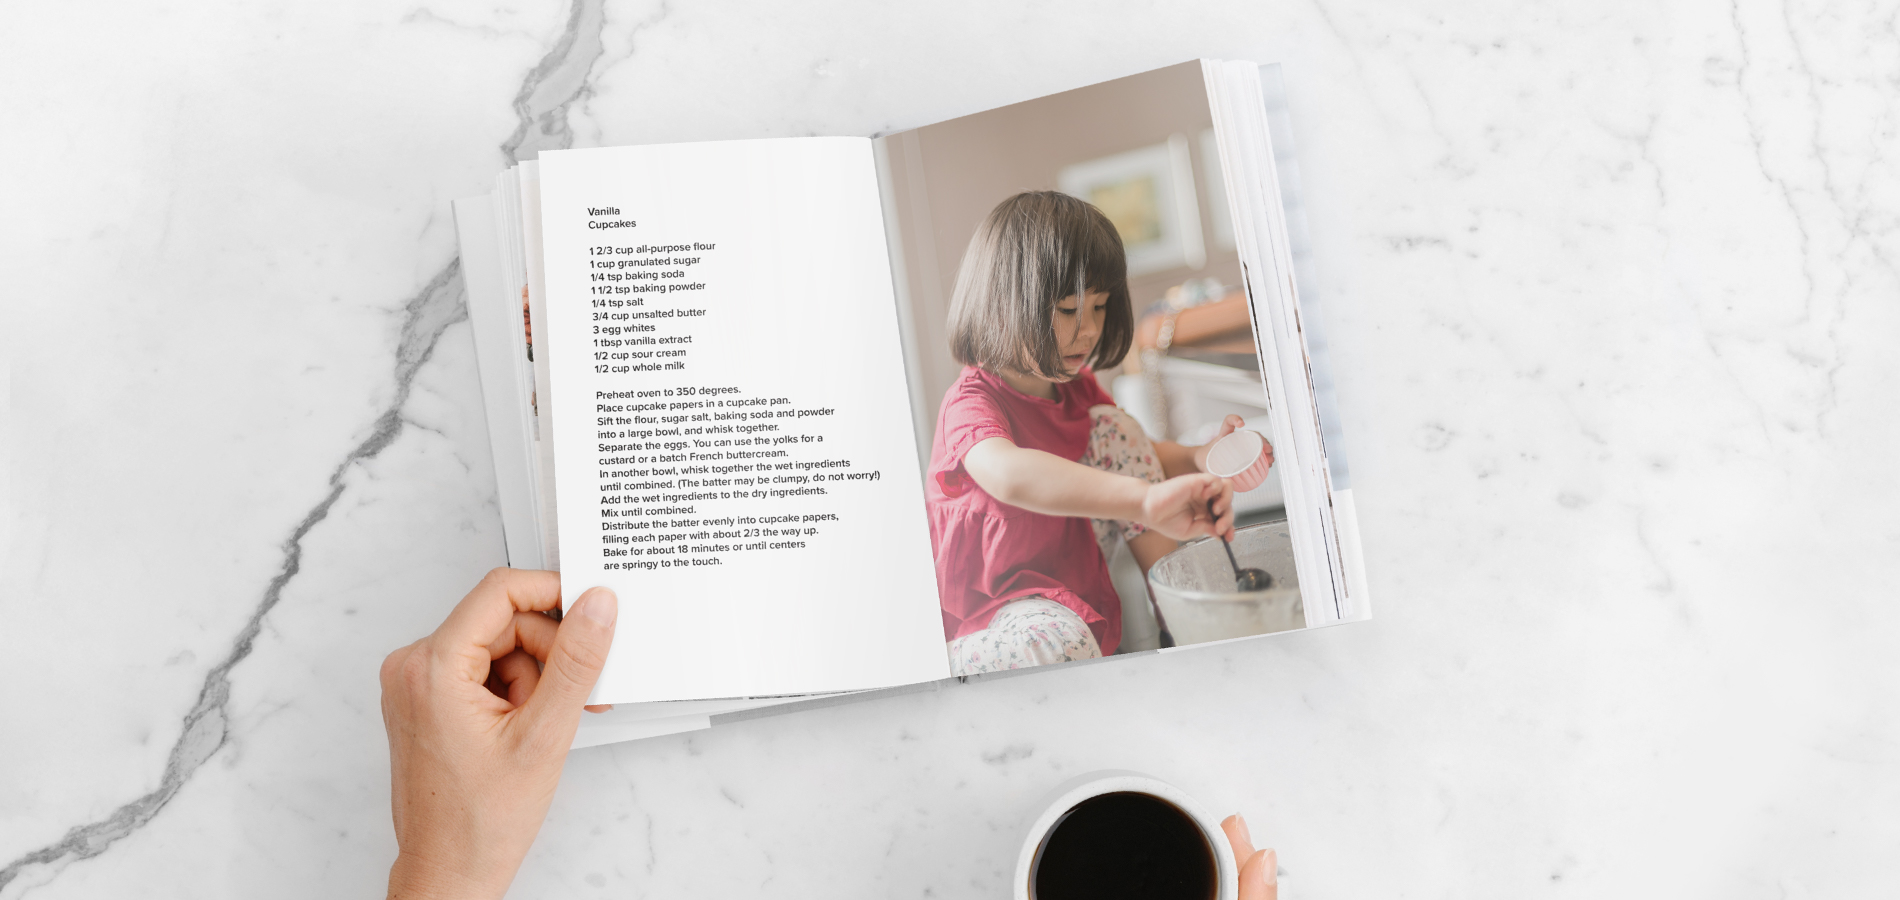 DIY recipe book with photo of little girl making cupcakes